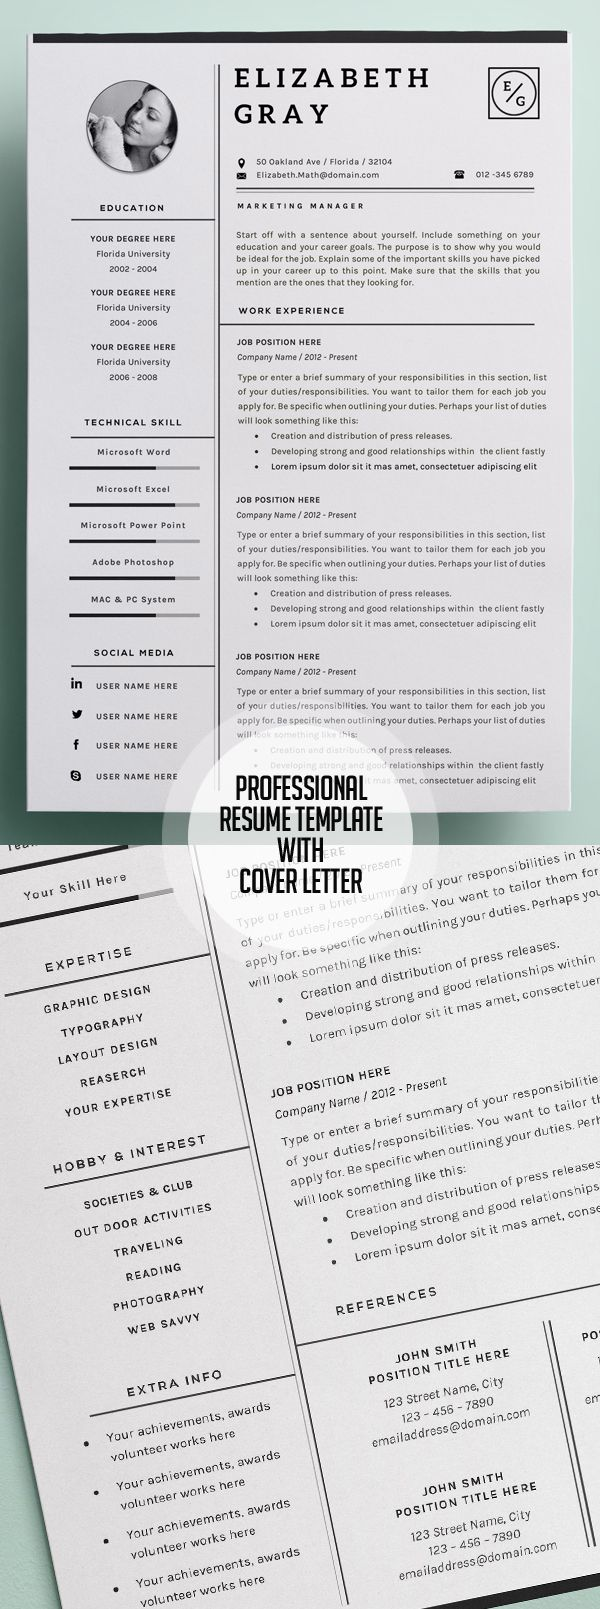 Opposenewapstandardsus  Picturesque  Resume Ideas On Pinterest  Resume Resume Templates And  With Glamorous Professional And Modern Resume Template With Page Cover Cvtemplate With Alluring Resume Email Also Resume Building Tips In Addition Teaching Resumes And Entry Level Resume Template As Well As Radiologic Technologist Resume Additionally Medical School Resume From Pinterestcom With Opposenewapstandardsus  Glamorous  Resume Ideas On Pinterest  Resume Resume Templates And  With Alluring Professional And Modern Resume Template With Page Cover Cvtemplate And Picturesque Resume Email Also Resume Building Tips In Addition Teaching Resumes From Pinterestcom